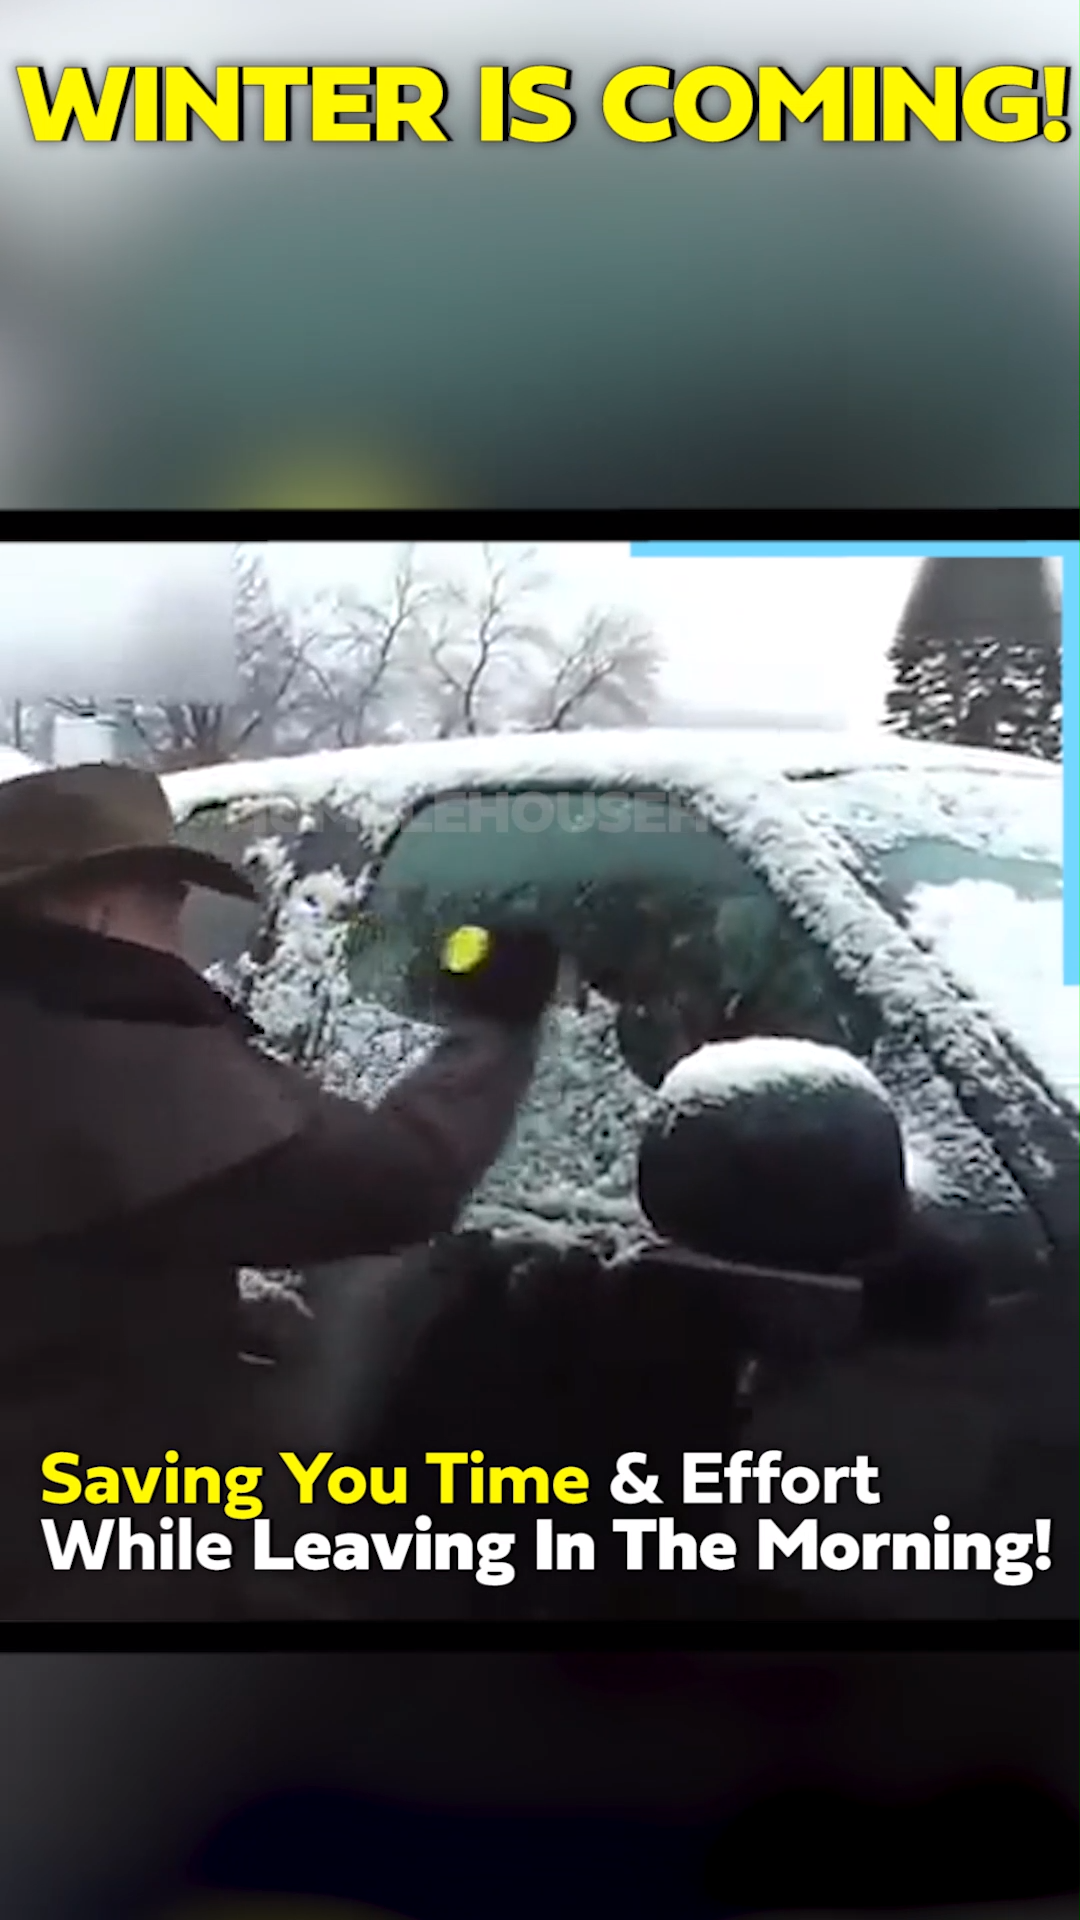 ❄️Winter Is Coming, Save Time Scraping!